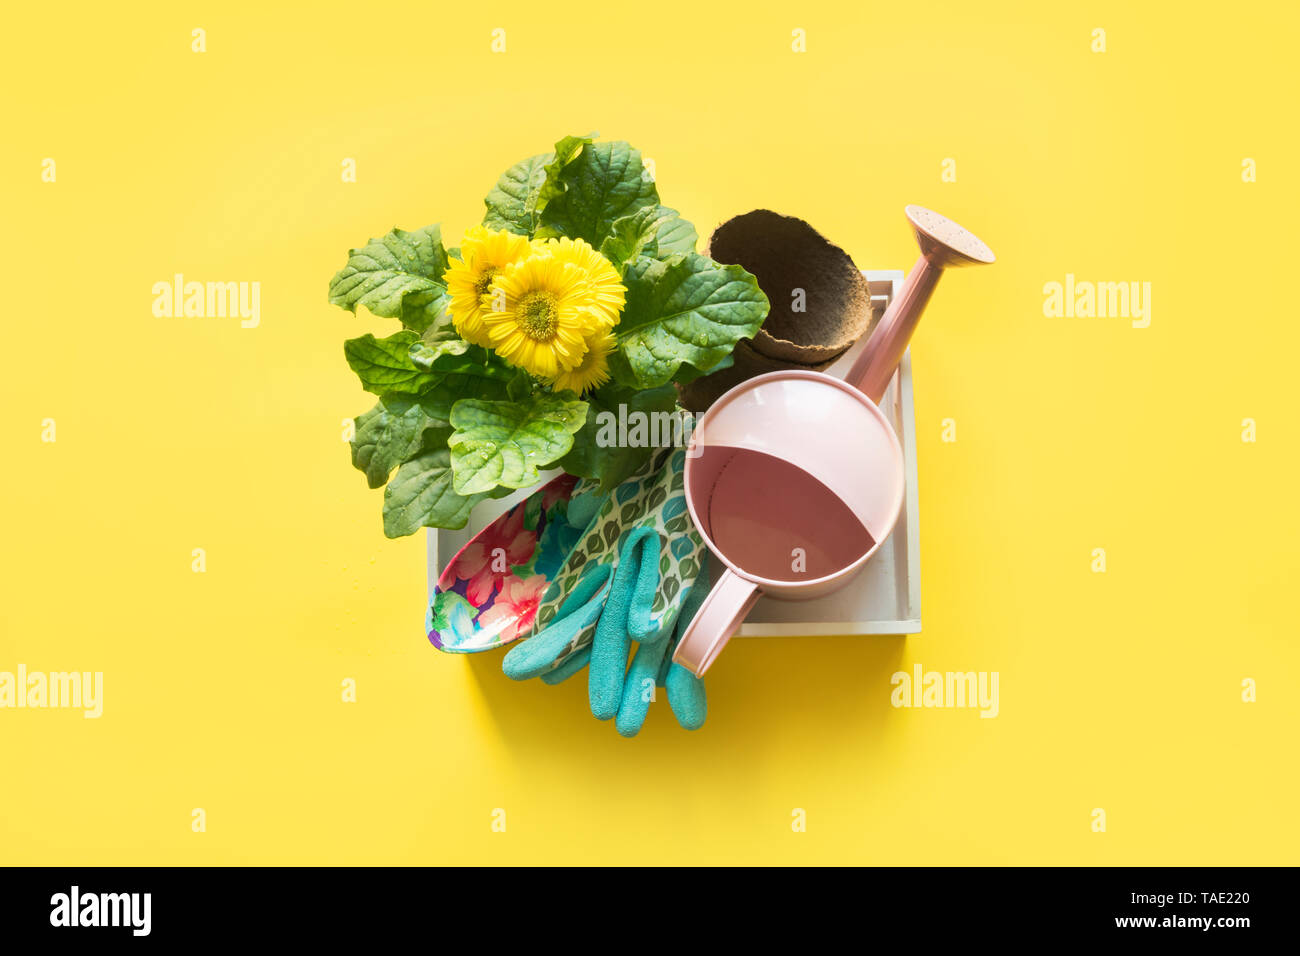 Gardening background with gerbera, tolls and flowers plant in box on yellow background. View from above. - Stock Image